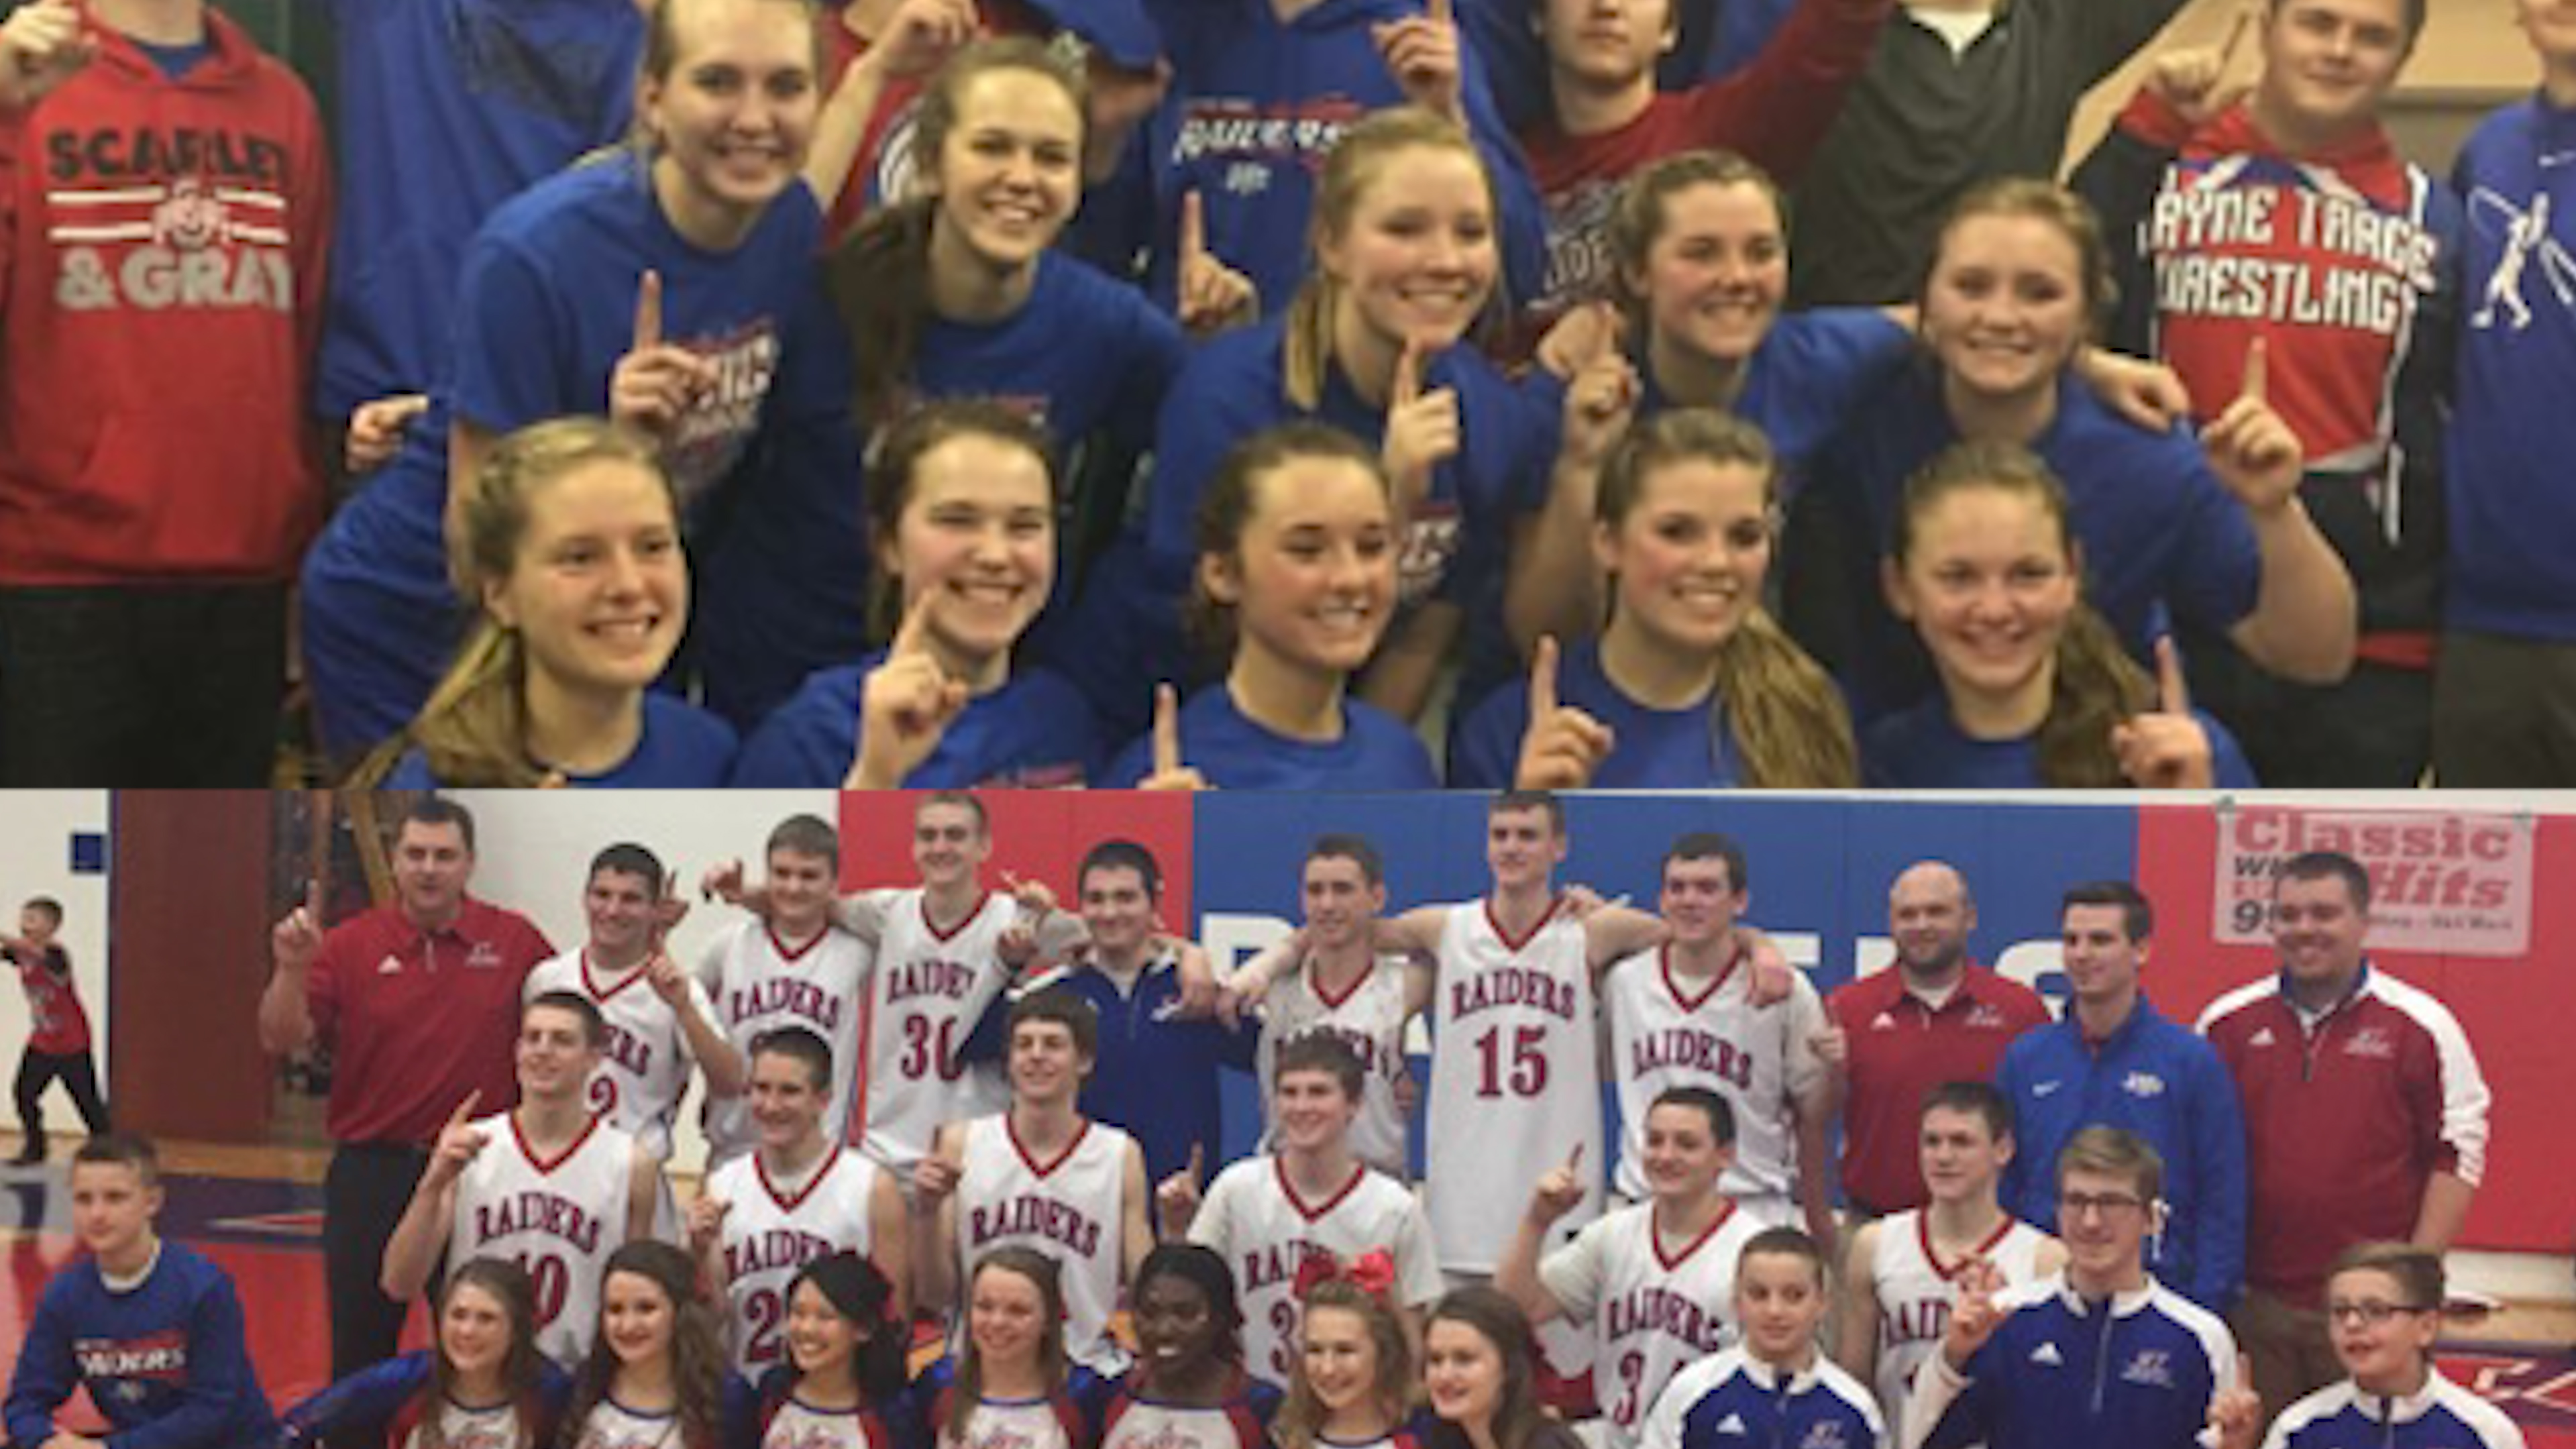 Wayne Trace boys & girls hoops win conference crowns in same season for 1st time